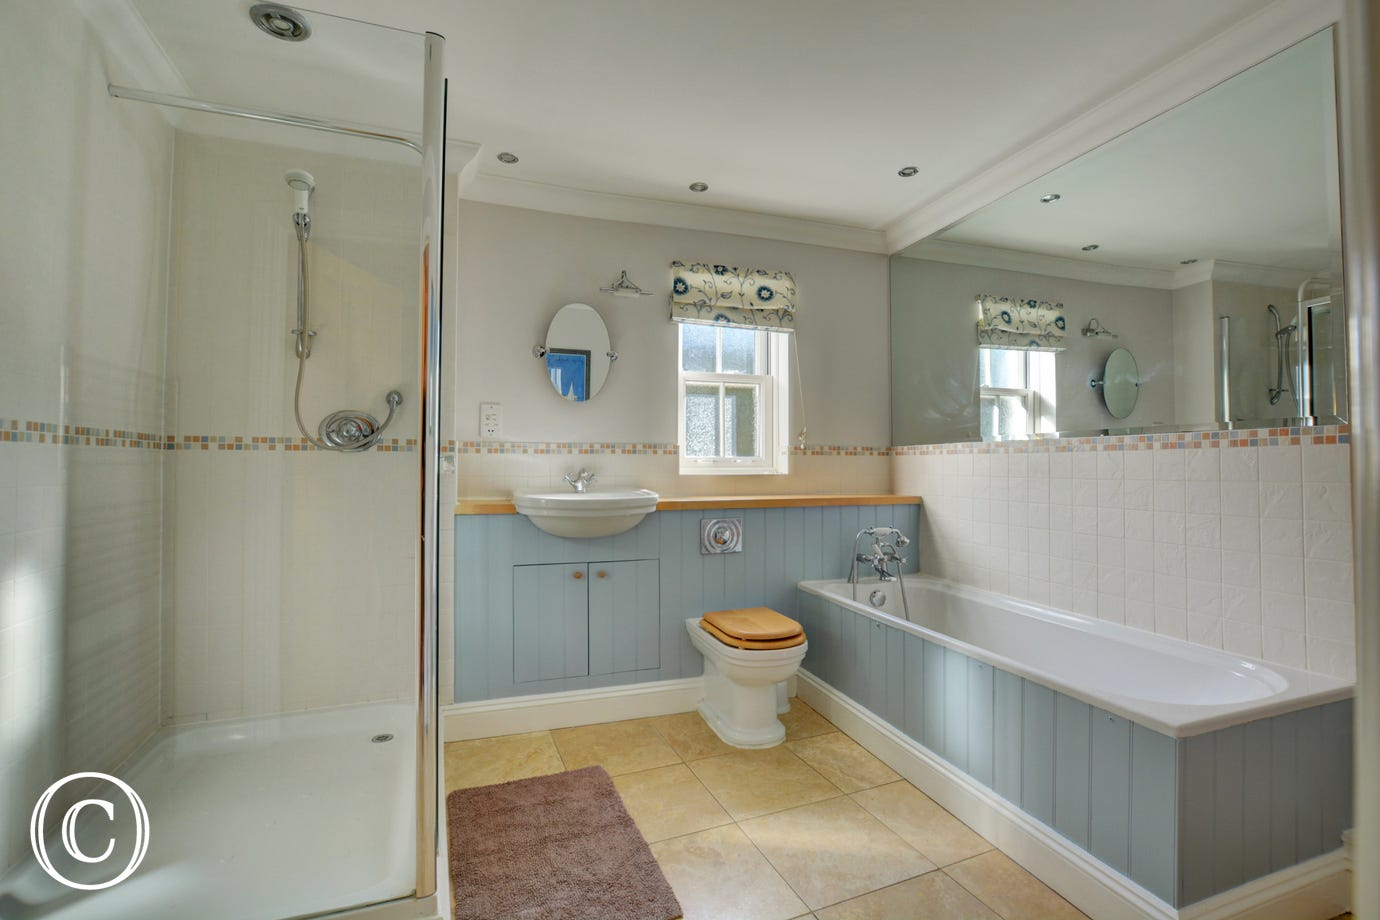 Spacious, modern ground floor bathroom with bath and separate shower cubicle